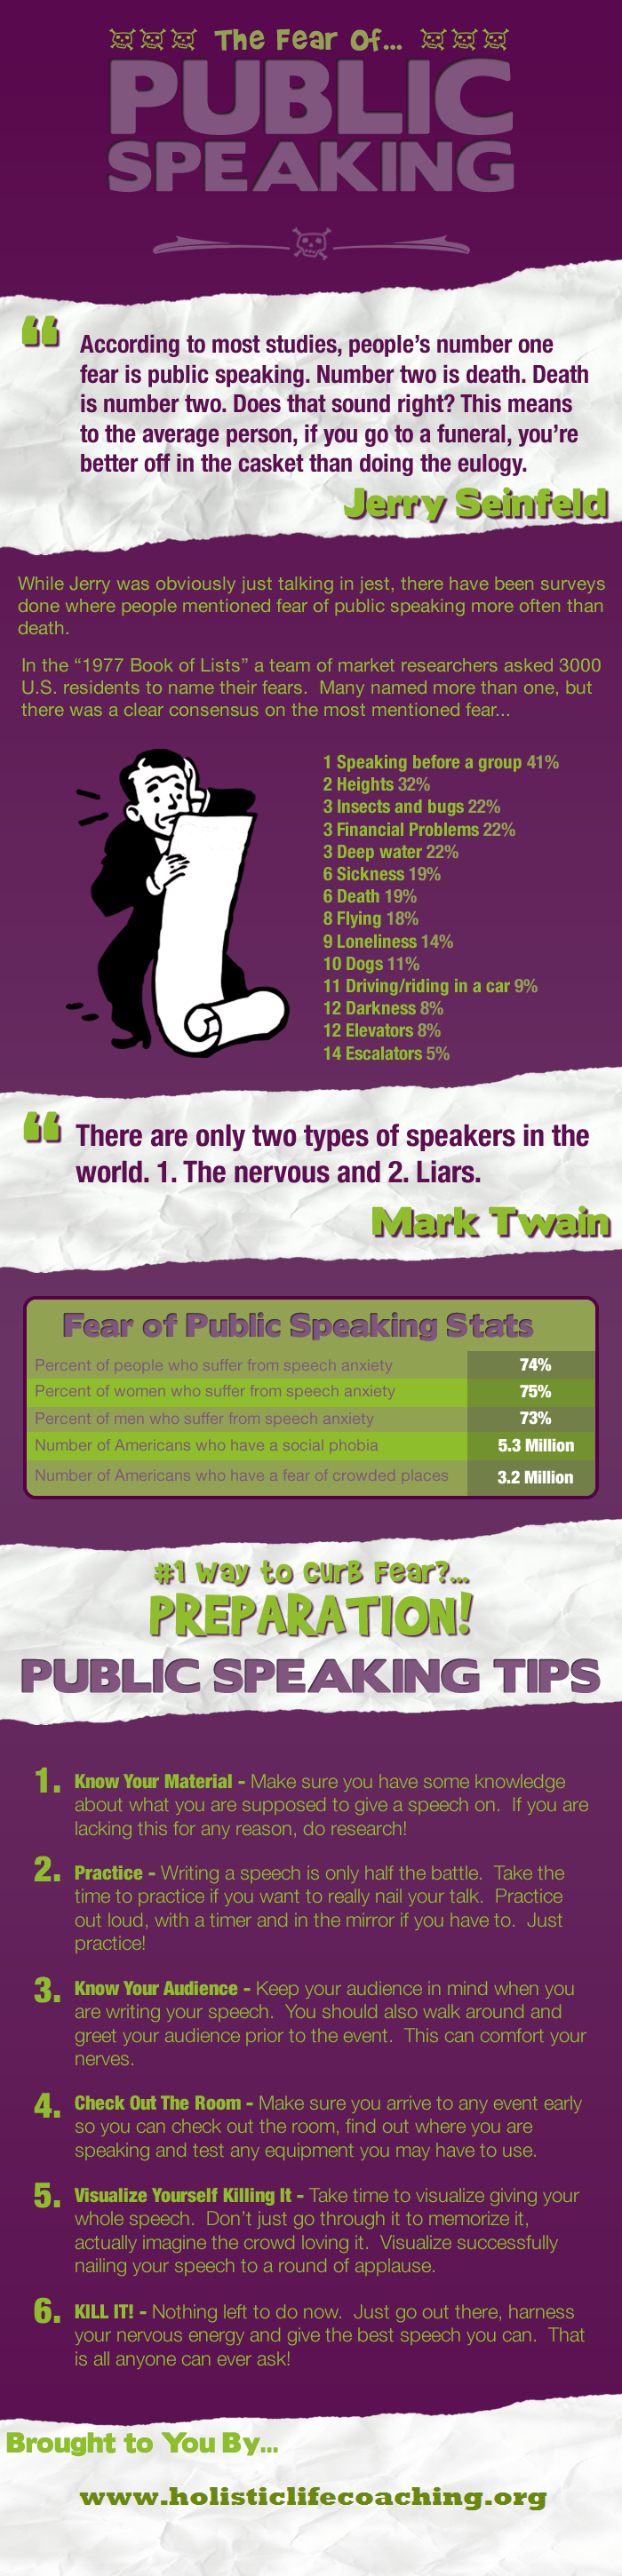 facing the fear of the mic: public speaking essay Overcoming fear of public speaking at a model un conference public speaking is an inseparable part of the model un experience while some delegates are born without this fear, for most of us it is a skill to be learned and practices just like playing guitar.